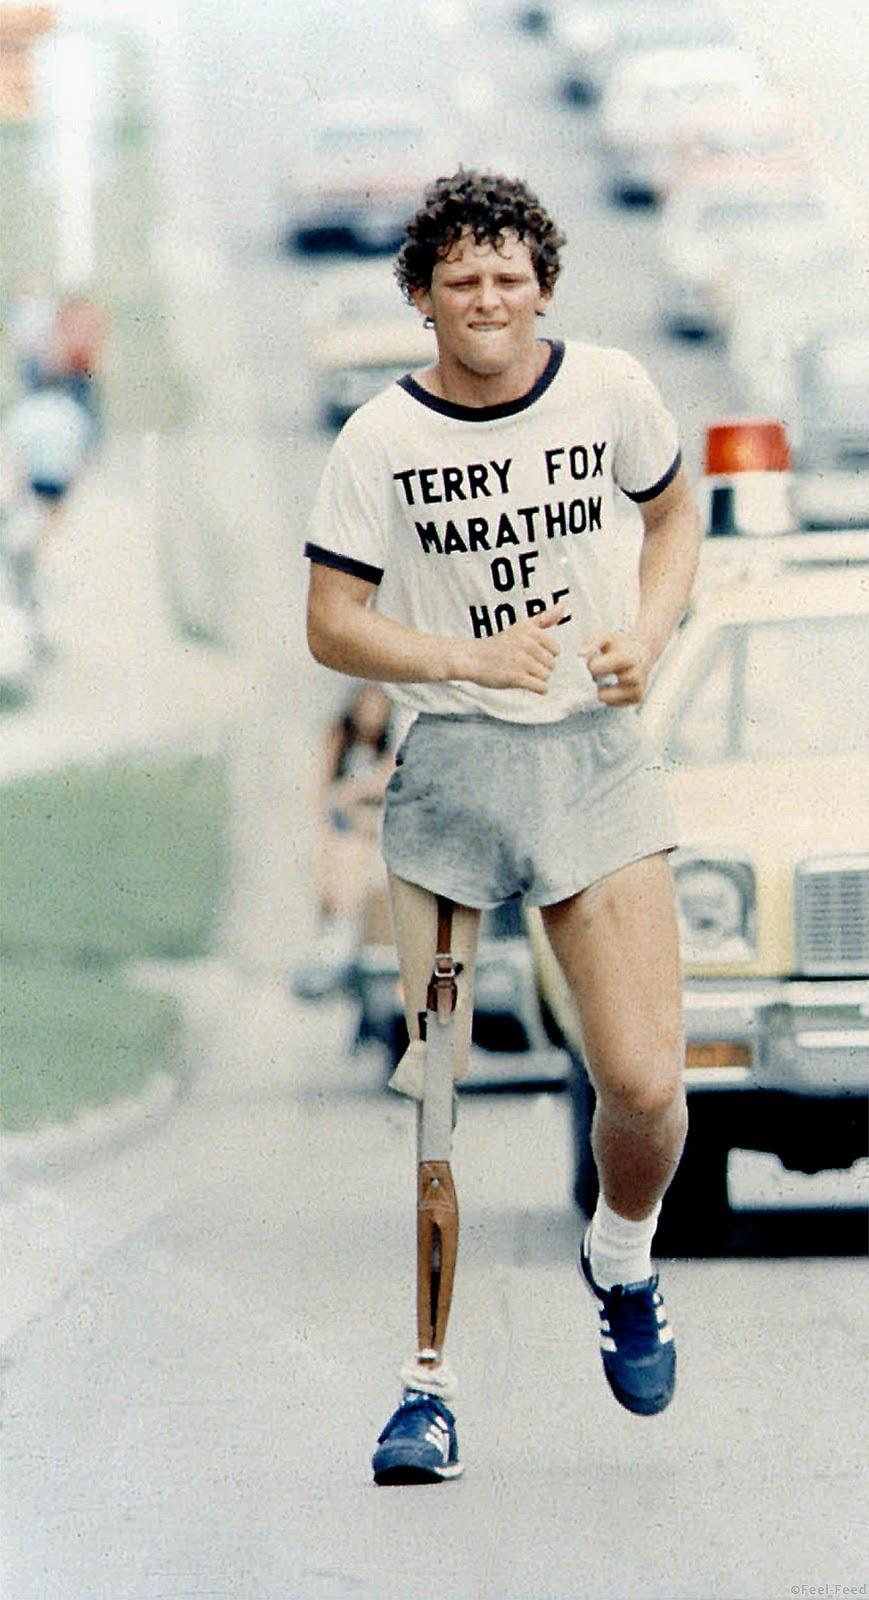 a biography of terry fox one of the greatest athlete to run on the face of this planet When cancer finally claimed his life in 1981, canada mourned the loss of a hero, but the terry fox marathon of hope lives on the terry fox foundation raised more than $17 million in 1999, and support for the event nationally and around the world is growing.